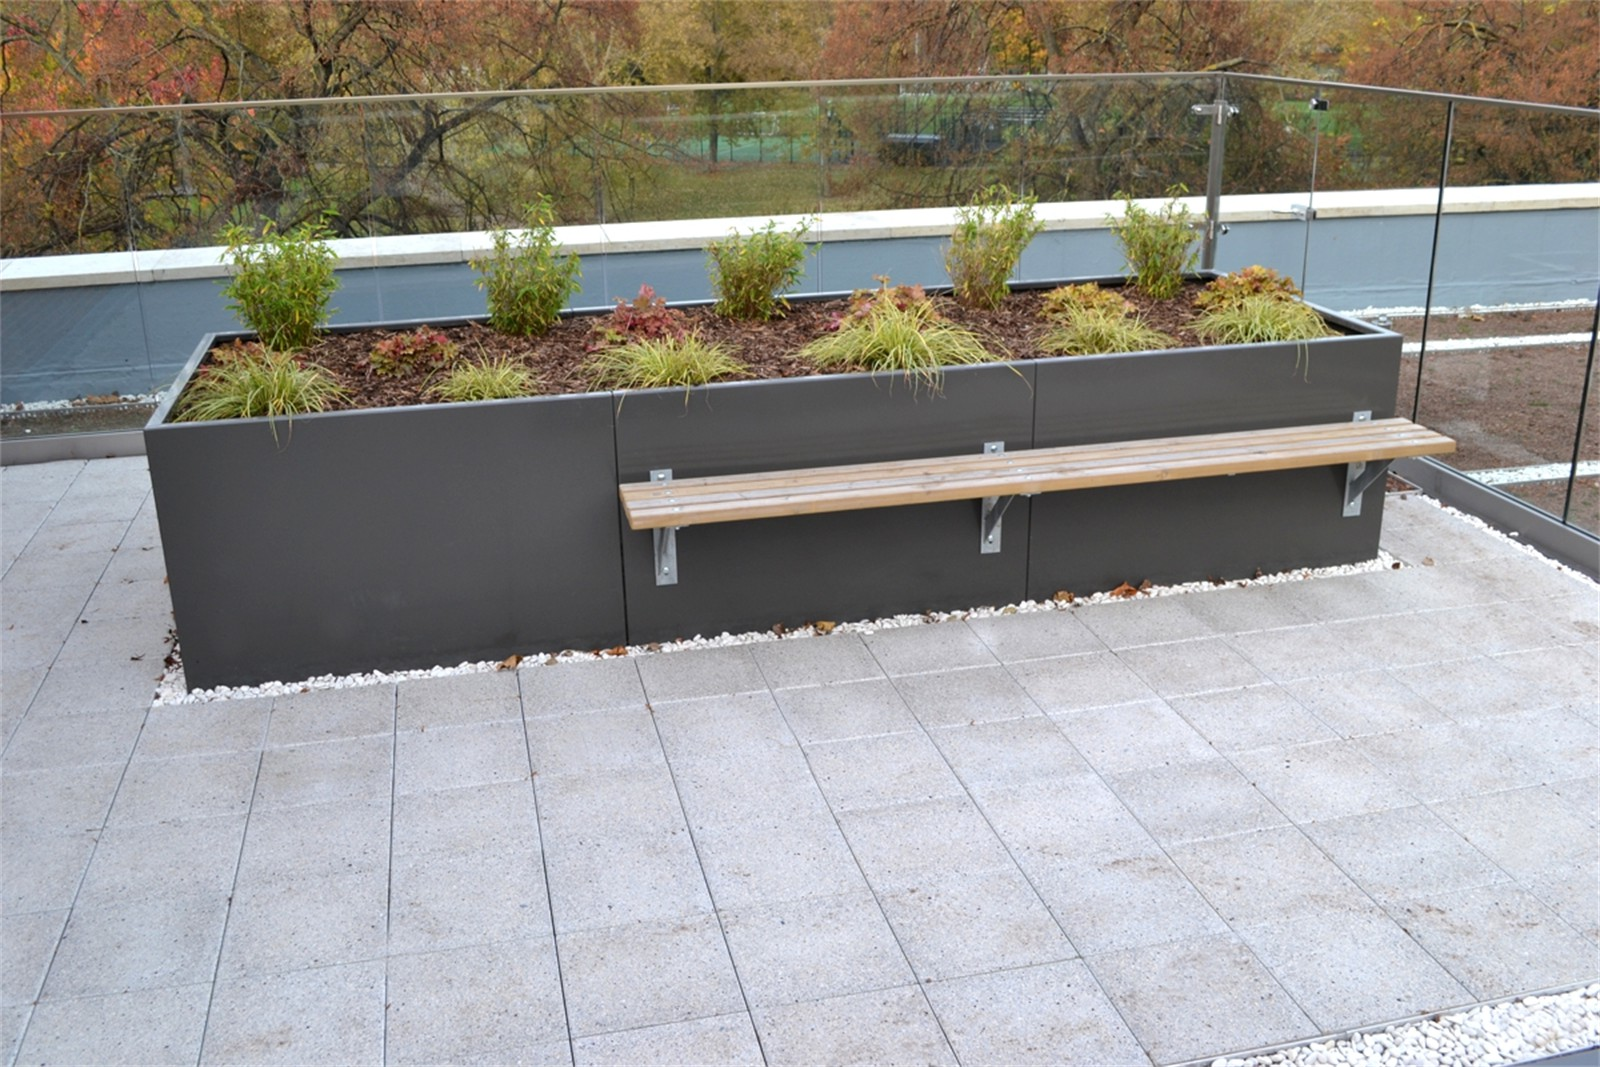 c121v08 - Stratum planter walling with Bexley planter bench